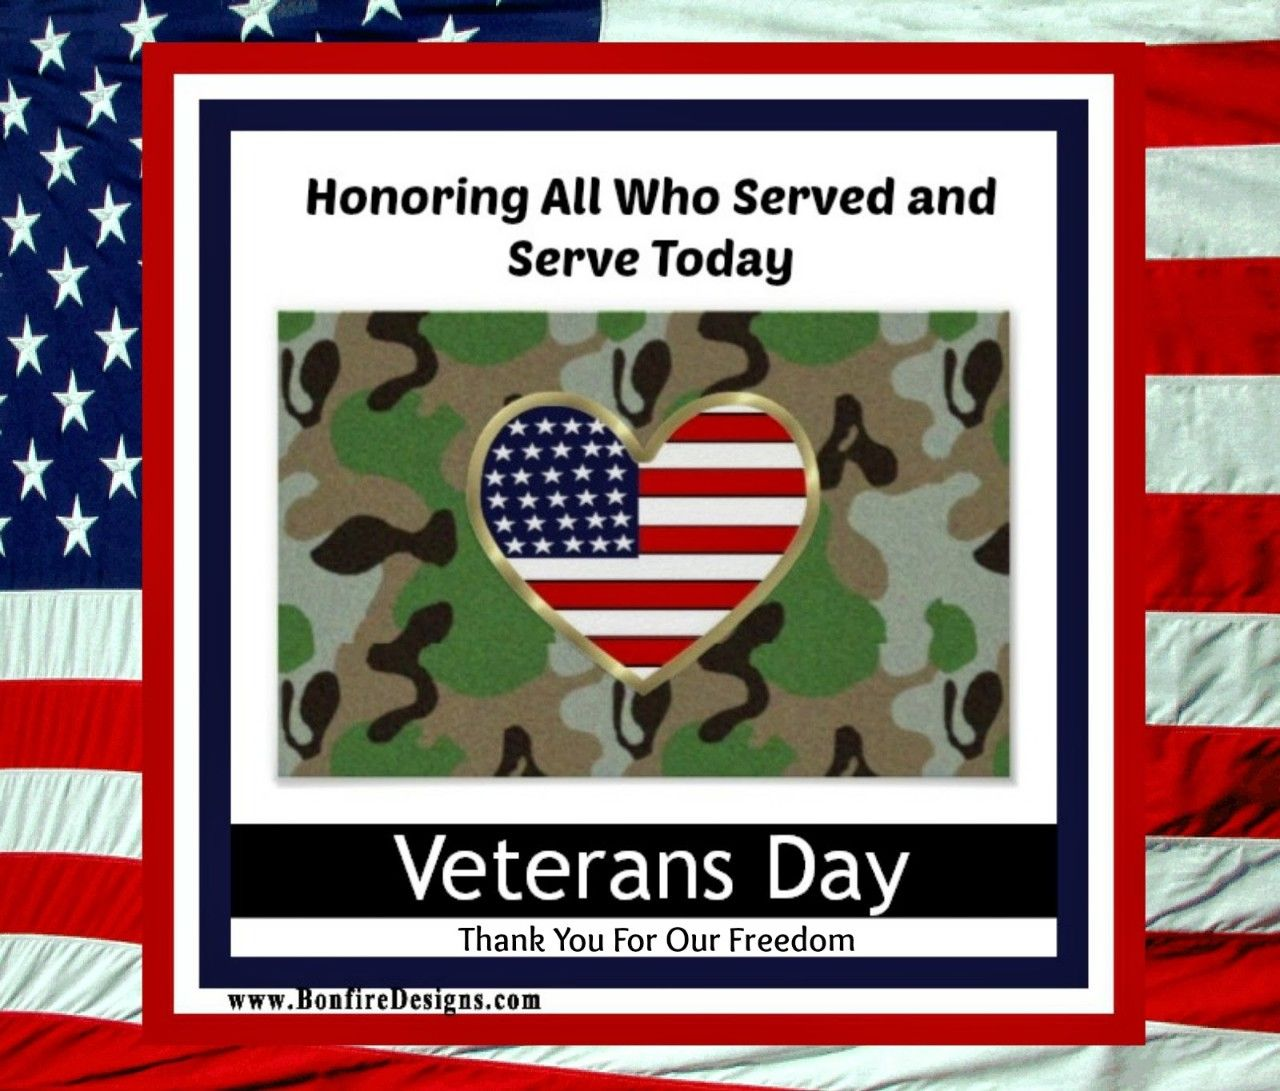 veterans day gift ideas for veterans and their family member